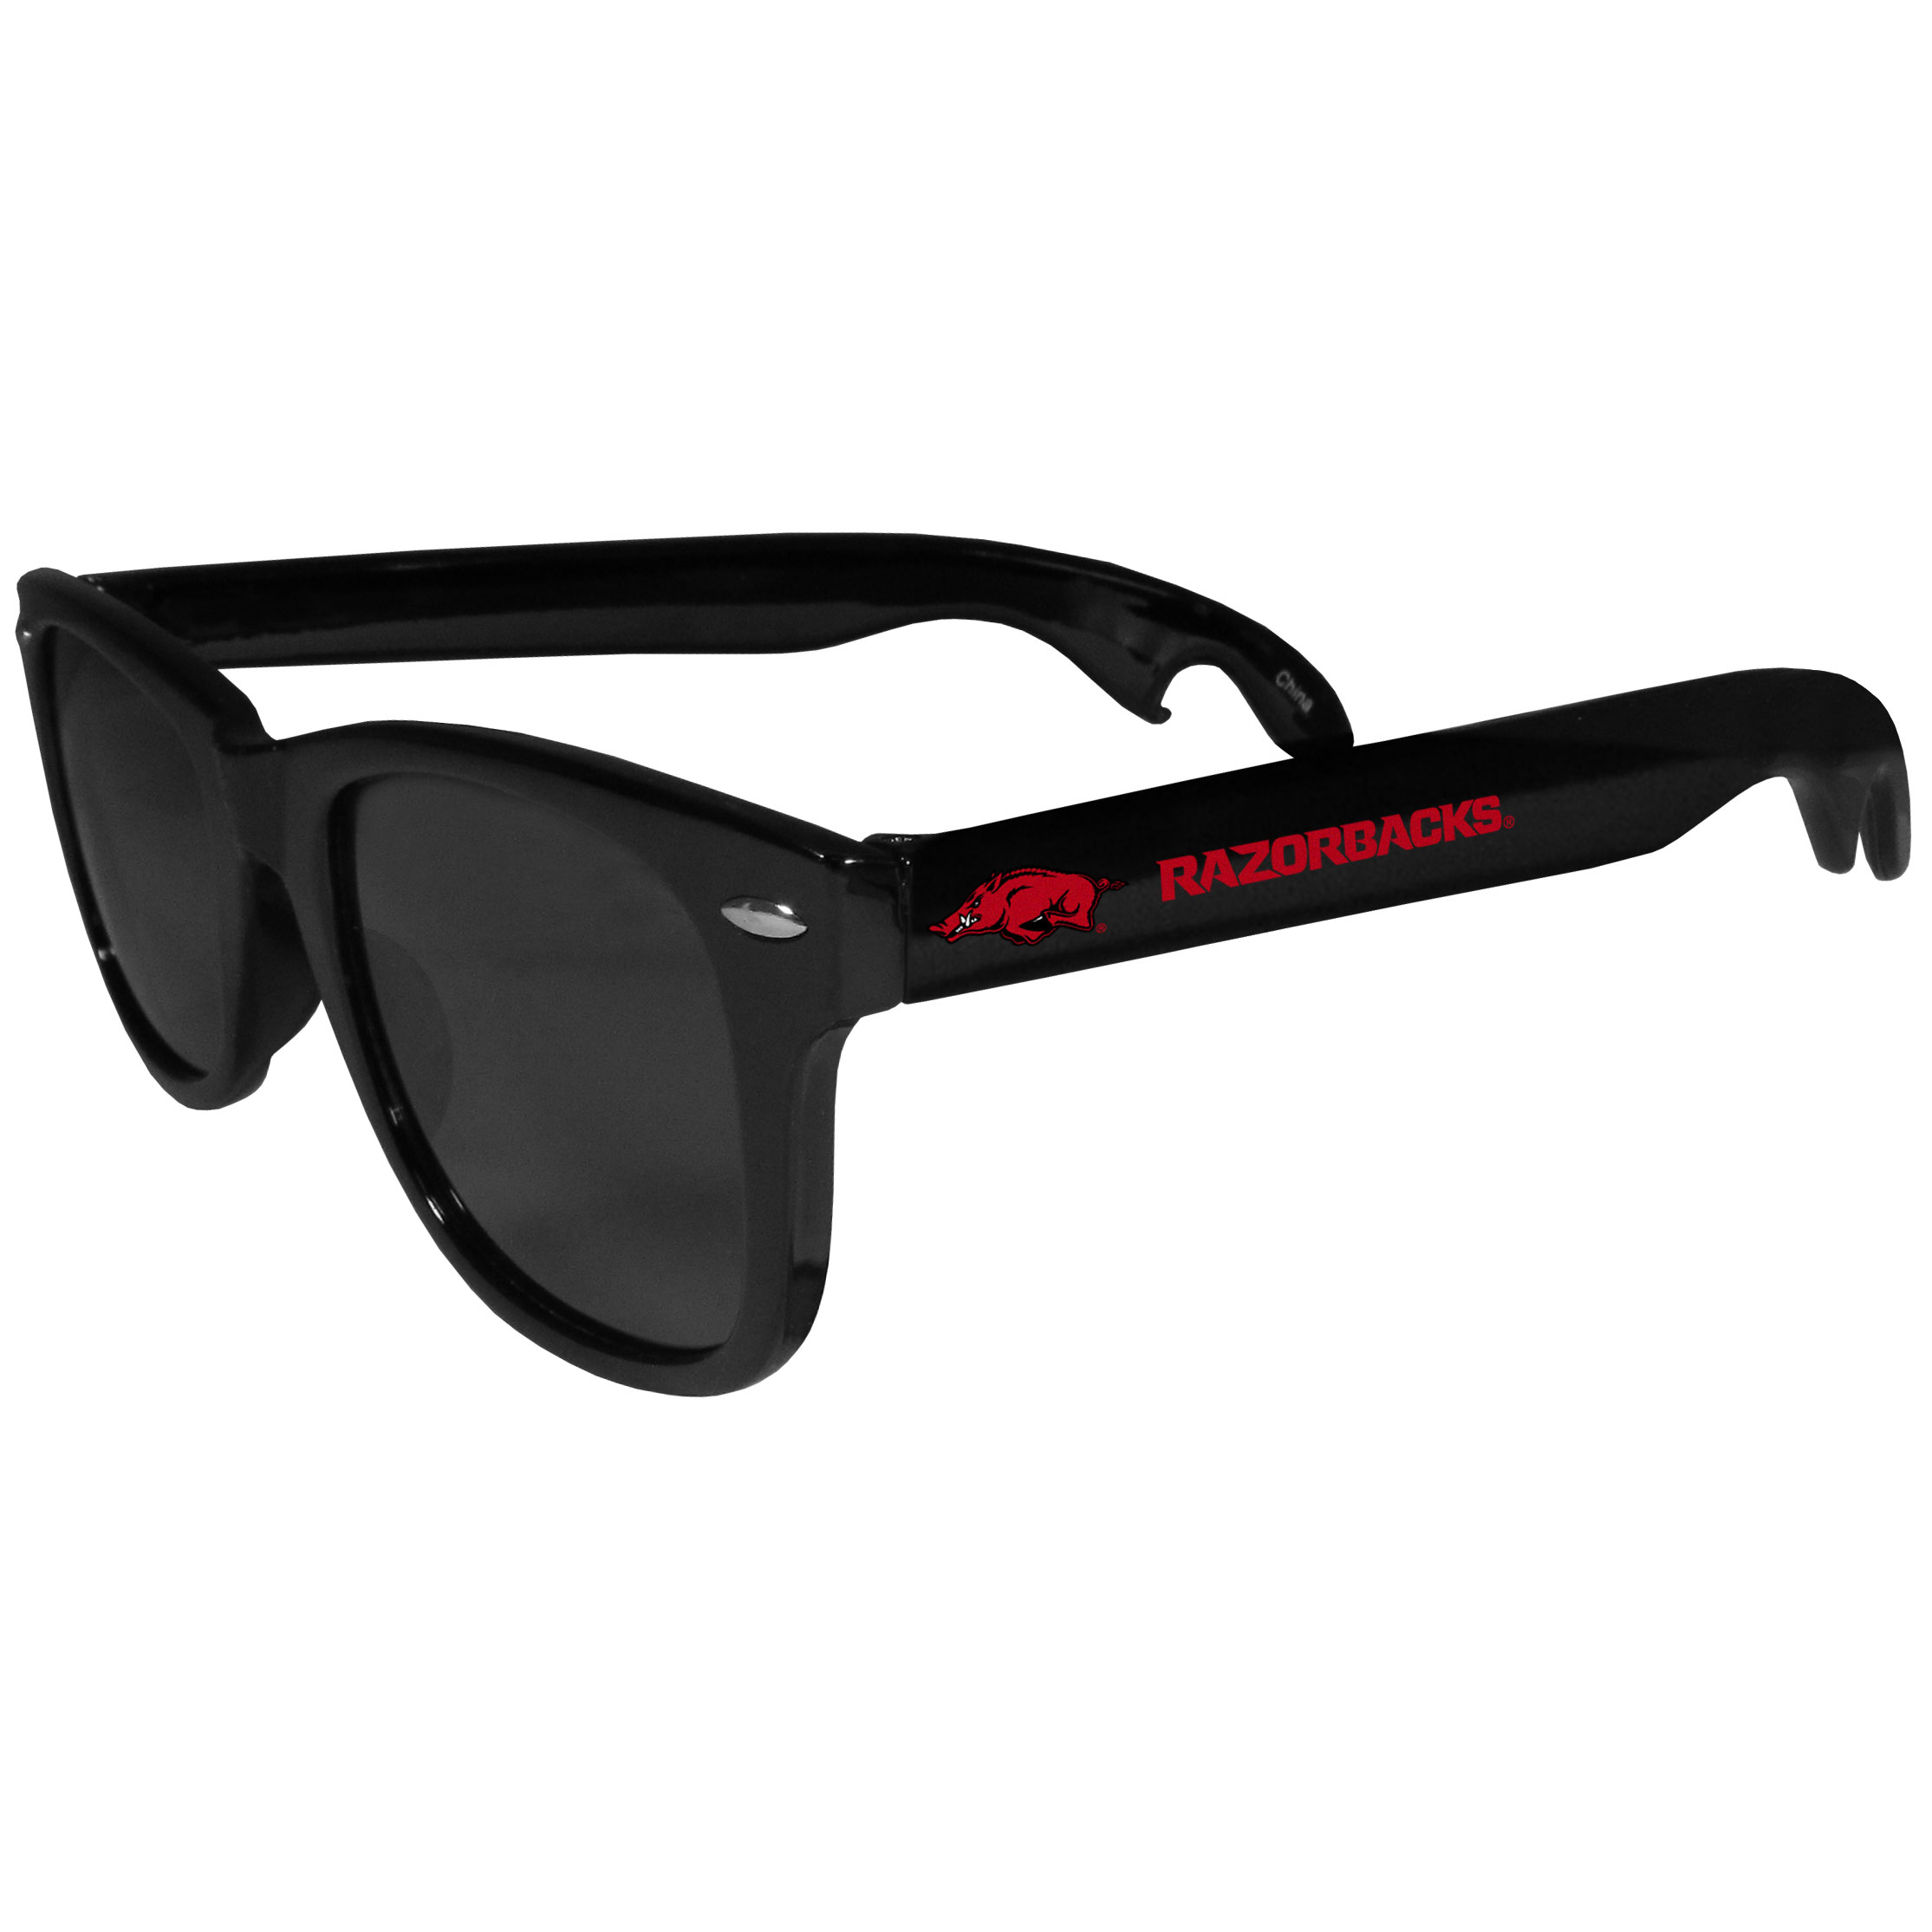 Arkansas Razorbacks Beachfarer Bottle Opener Sunglasses - Seriously, these sunglasses open bottles! Keep the party going with these amazing Arkansas Razorbacks bottle opener sunglasses. The stylish retro frames feature team designs on the arms and functional bottle openers on the end of the arms. Whether you are at the beach or having a backyard BBQ on game day, these shades will keep your eyes protected with 100% UVA/UVB protection and keep you hydrated with the handy bottle opener arms.